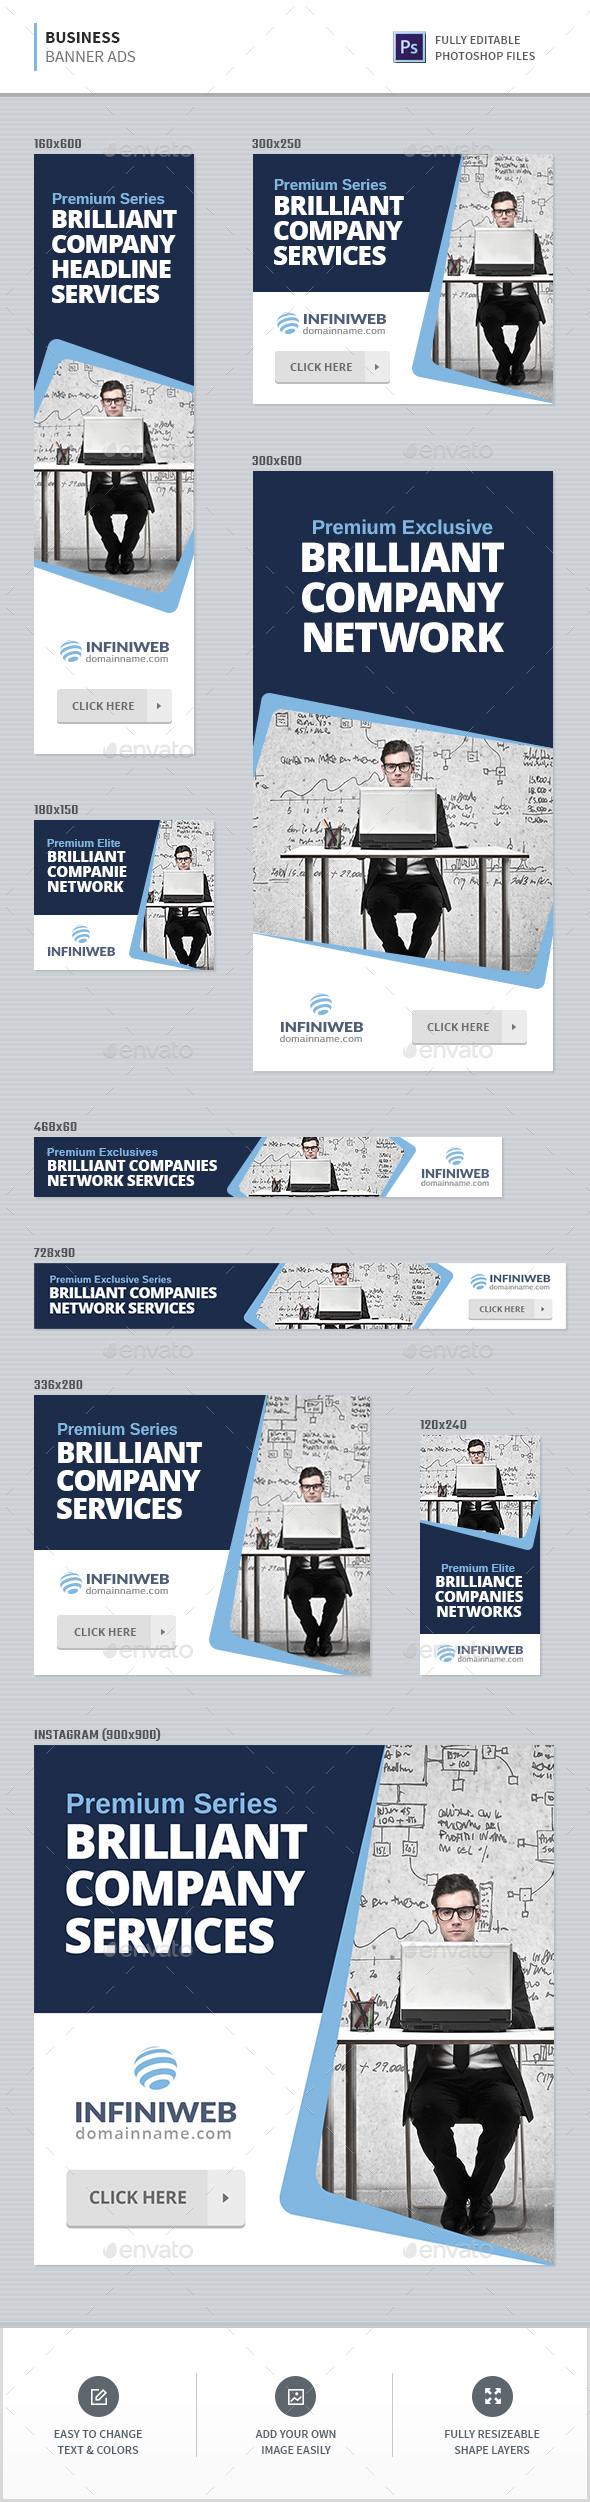 GraphicRiver Business Banners 20326656